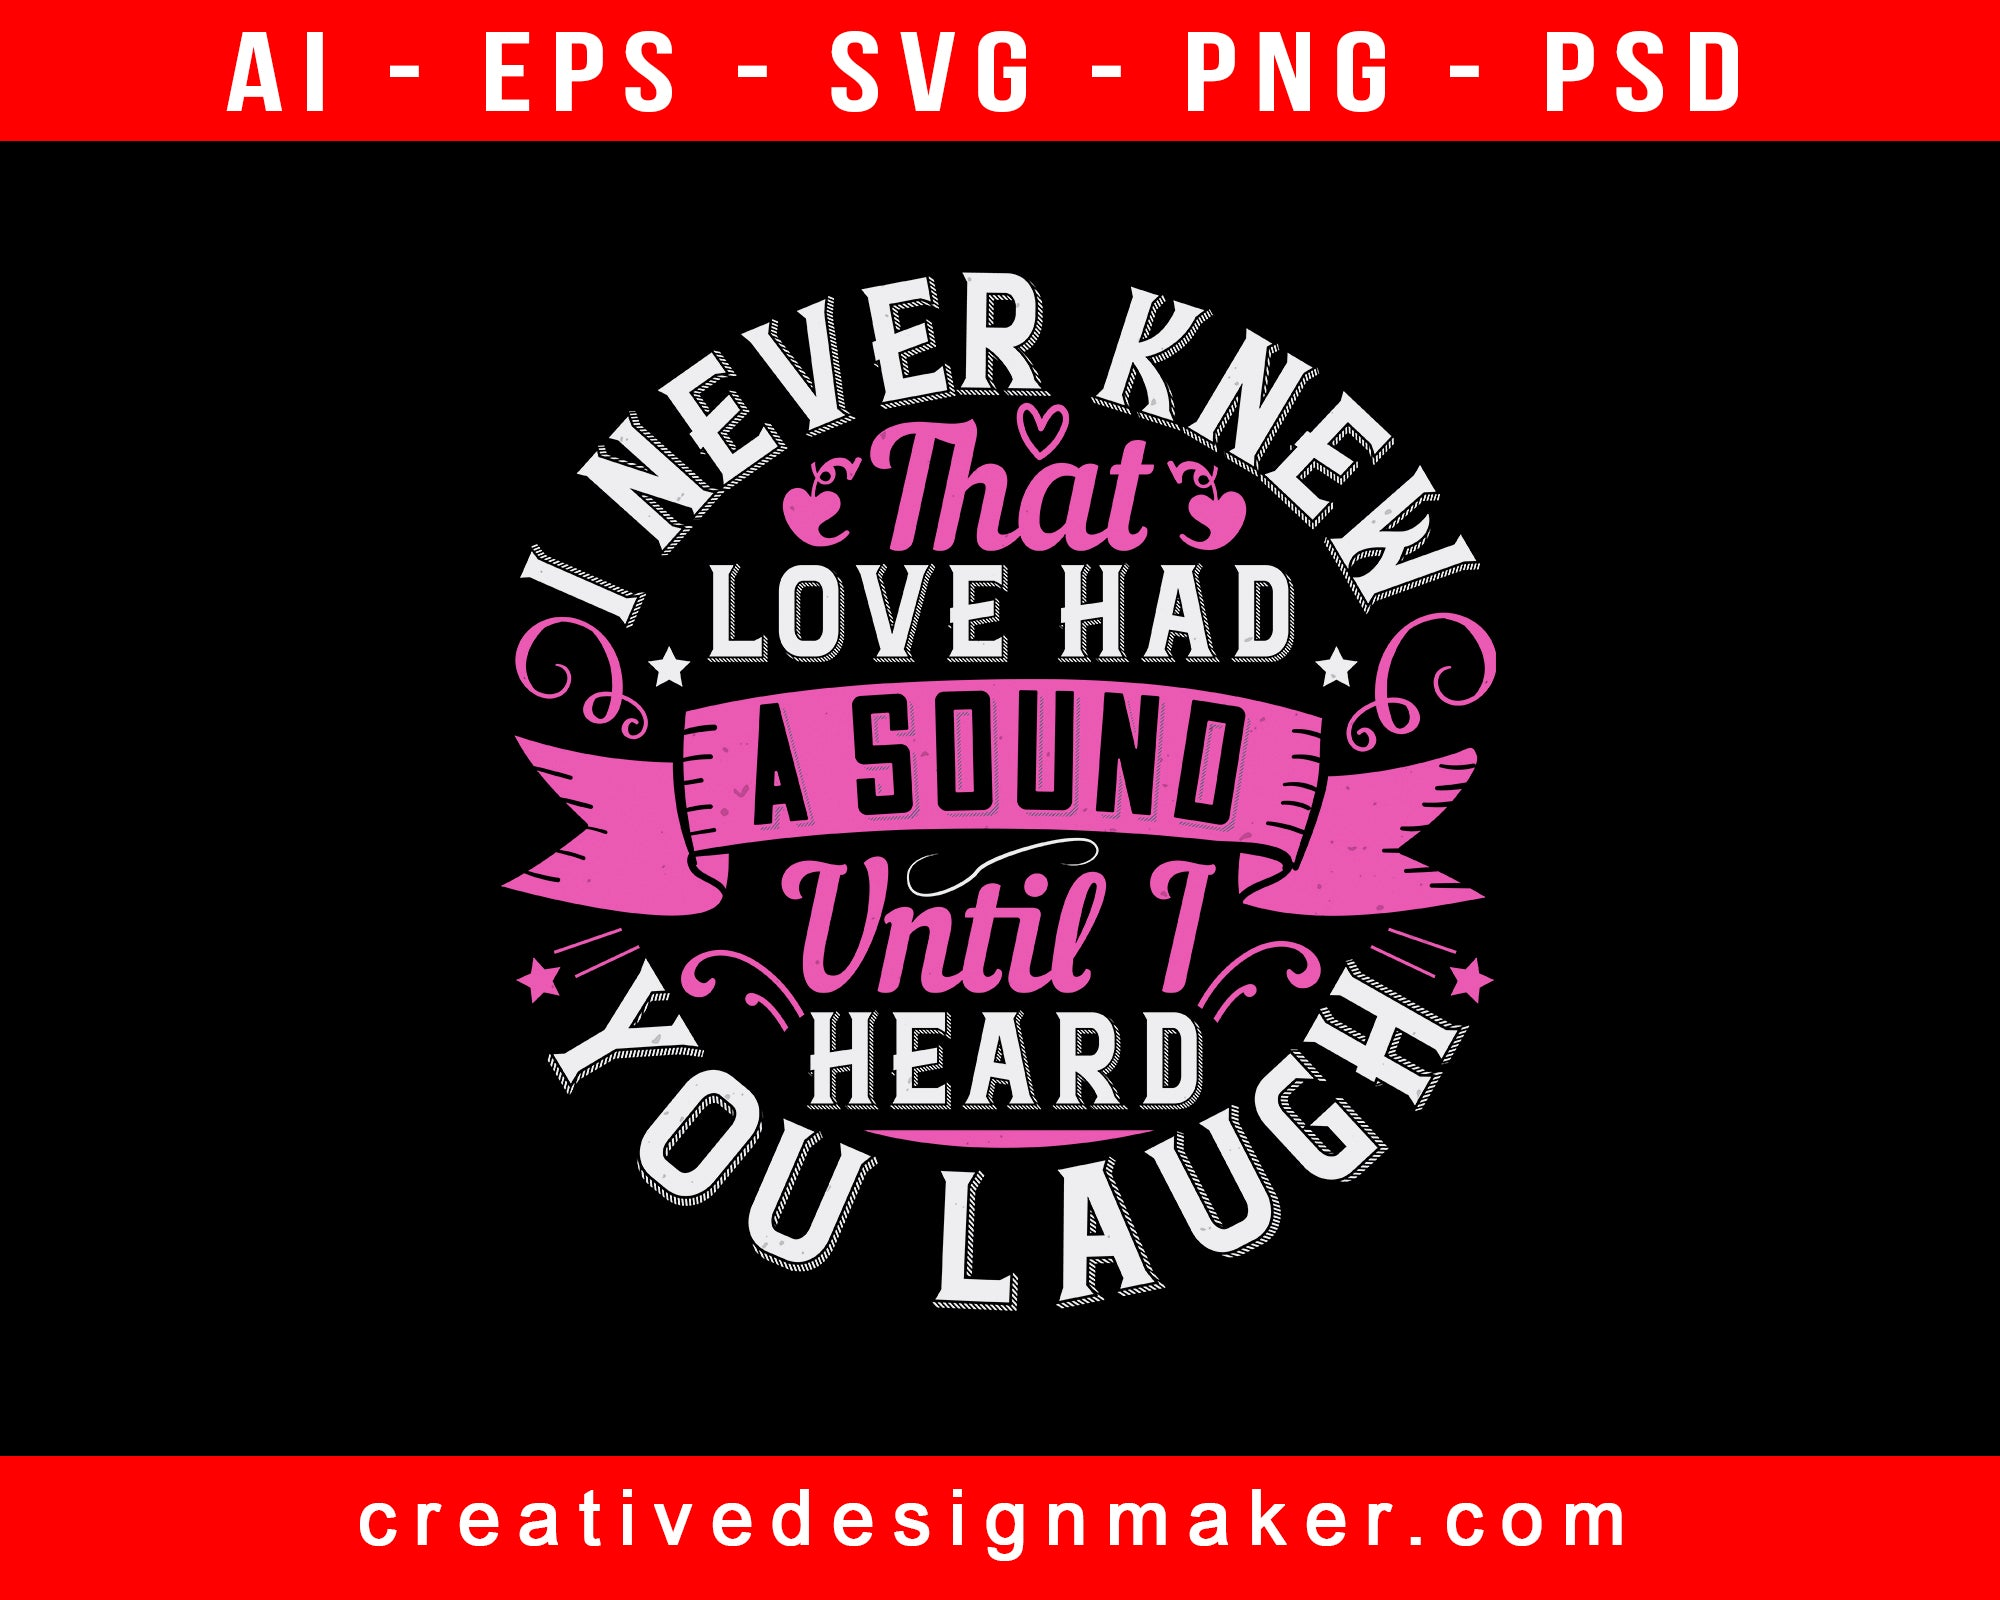 I Never Knew That Love Had A Sound Until I Heard You Laugh Auntie Print Ready Editable T-Shirt SVG Design!